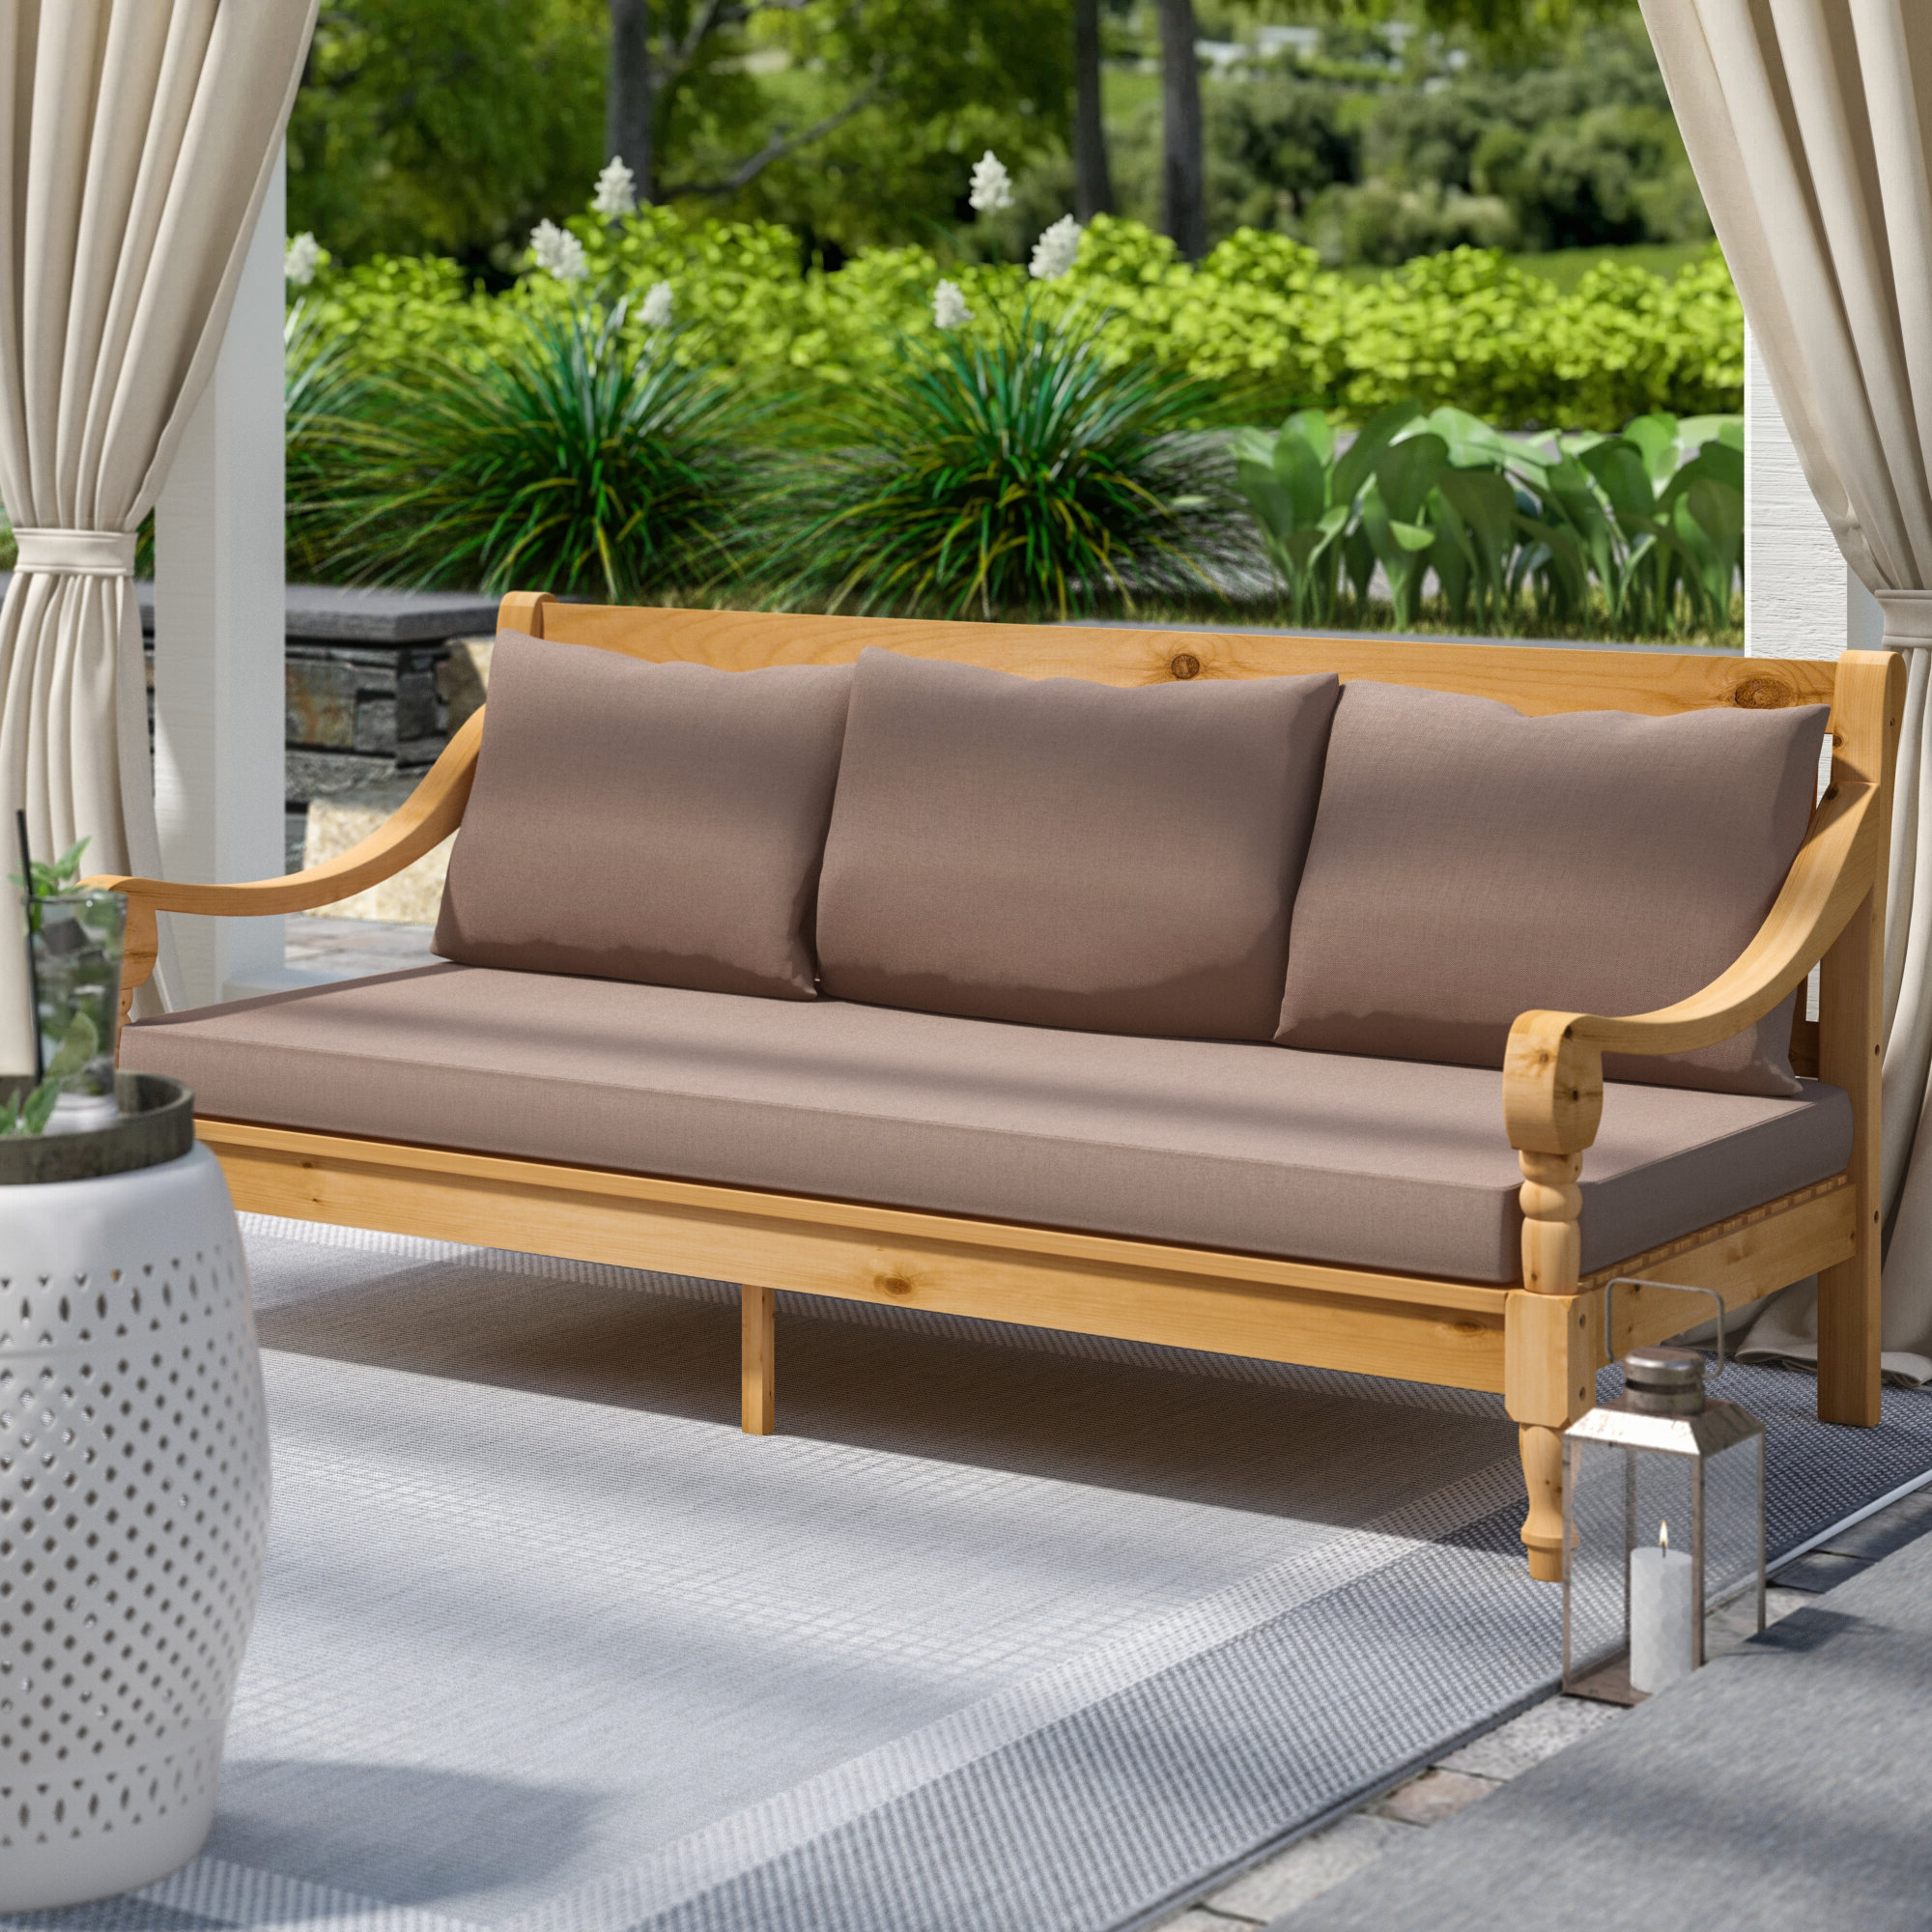 Roush Teak Patio Daybed With Cushions With Preferred Beal Patio Daybeds With Cushions (View 23 of 25)